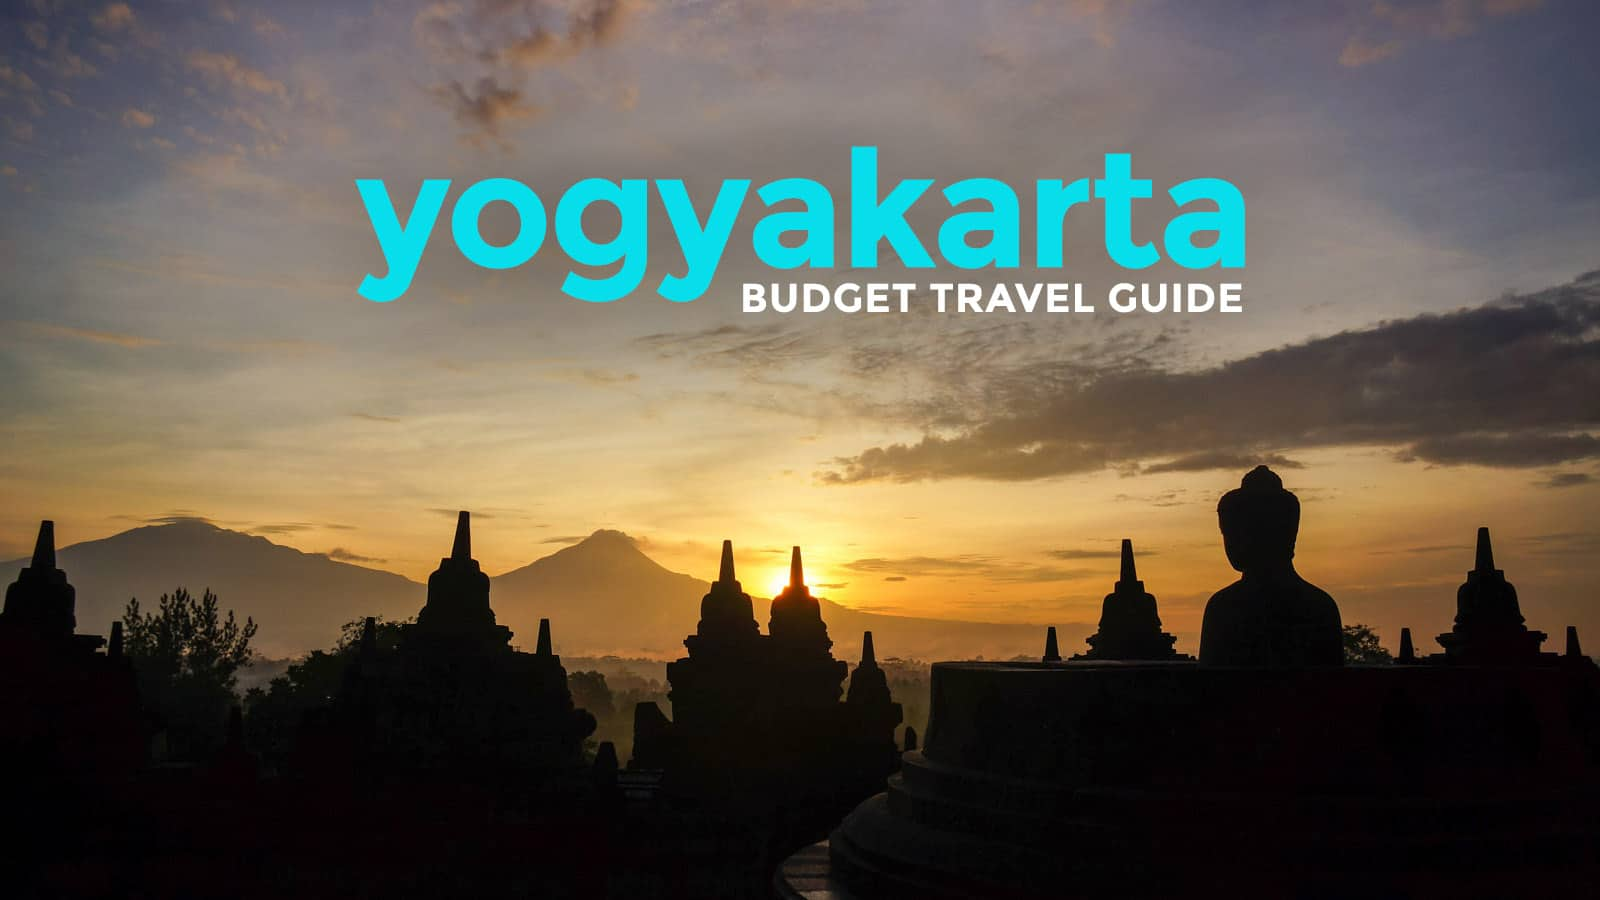 Yogyakarta On A Budget 2018 Travel Guide Itinerary The Poor Voucher Hotel West Lake Jogja